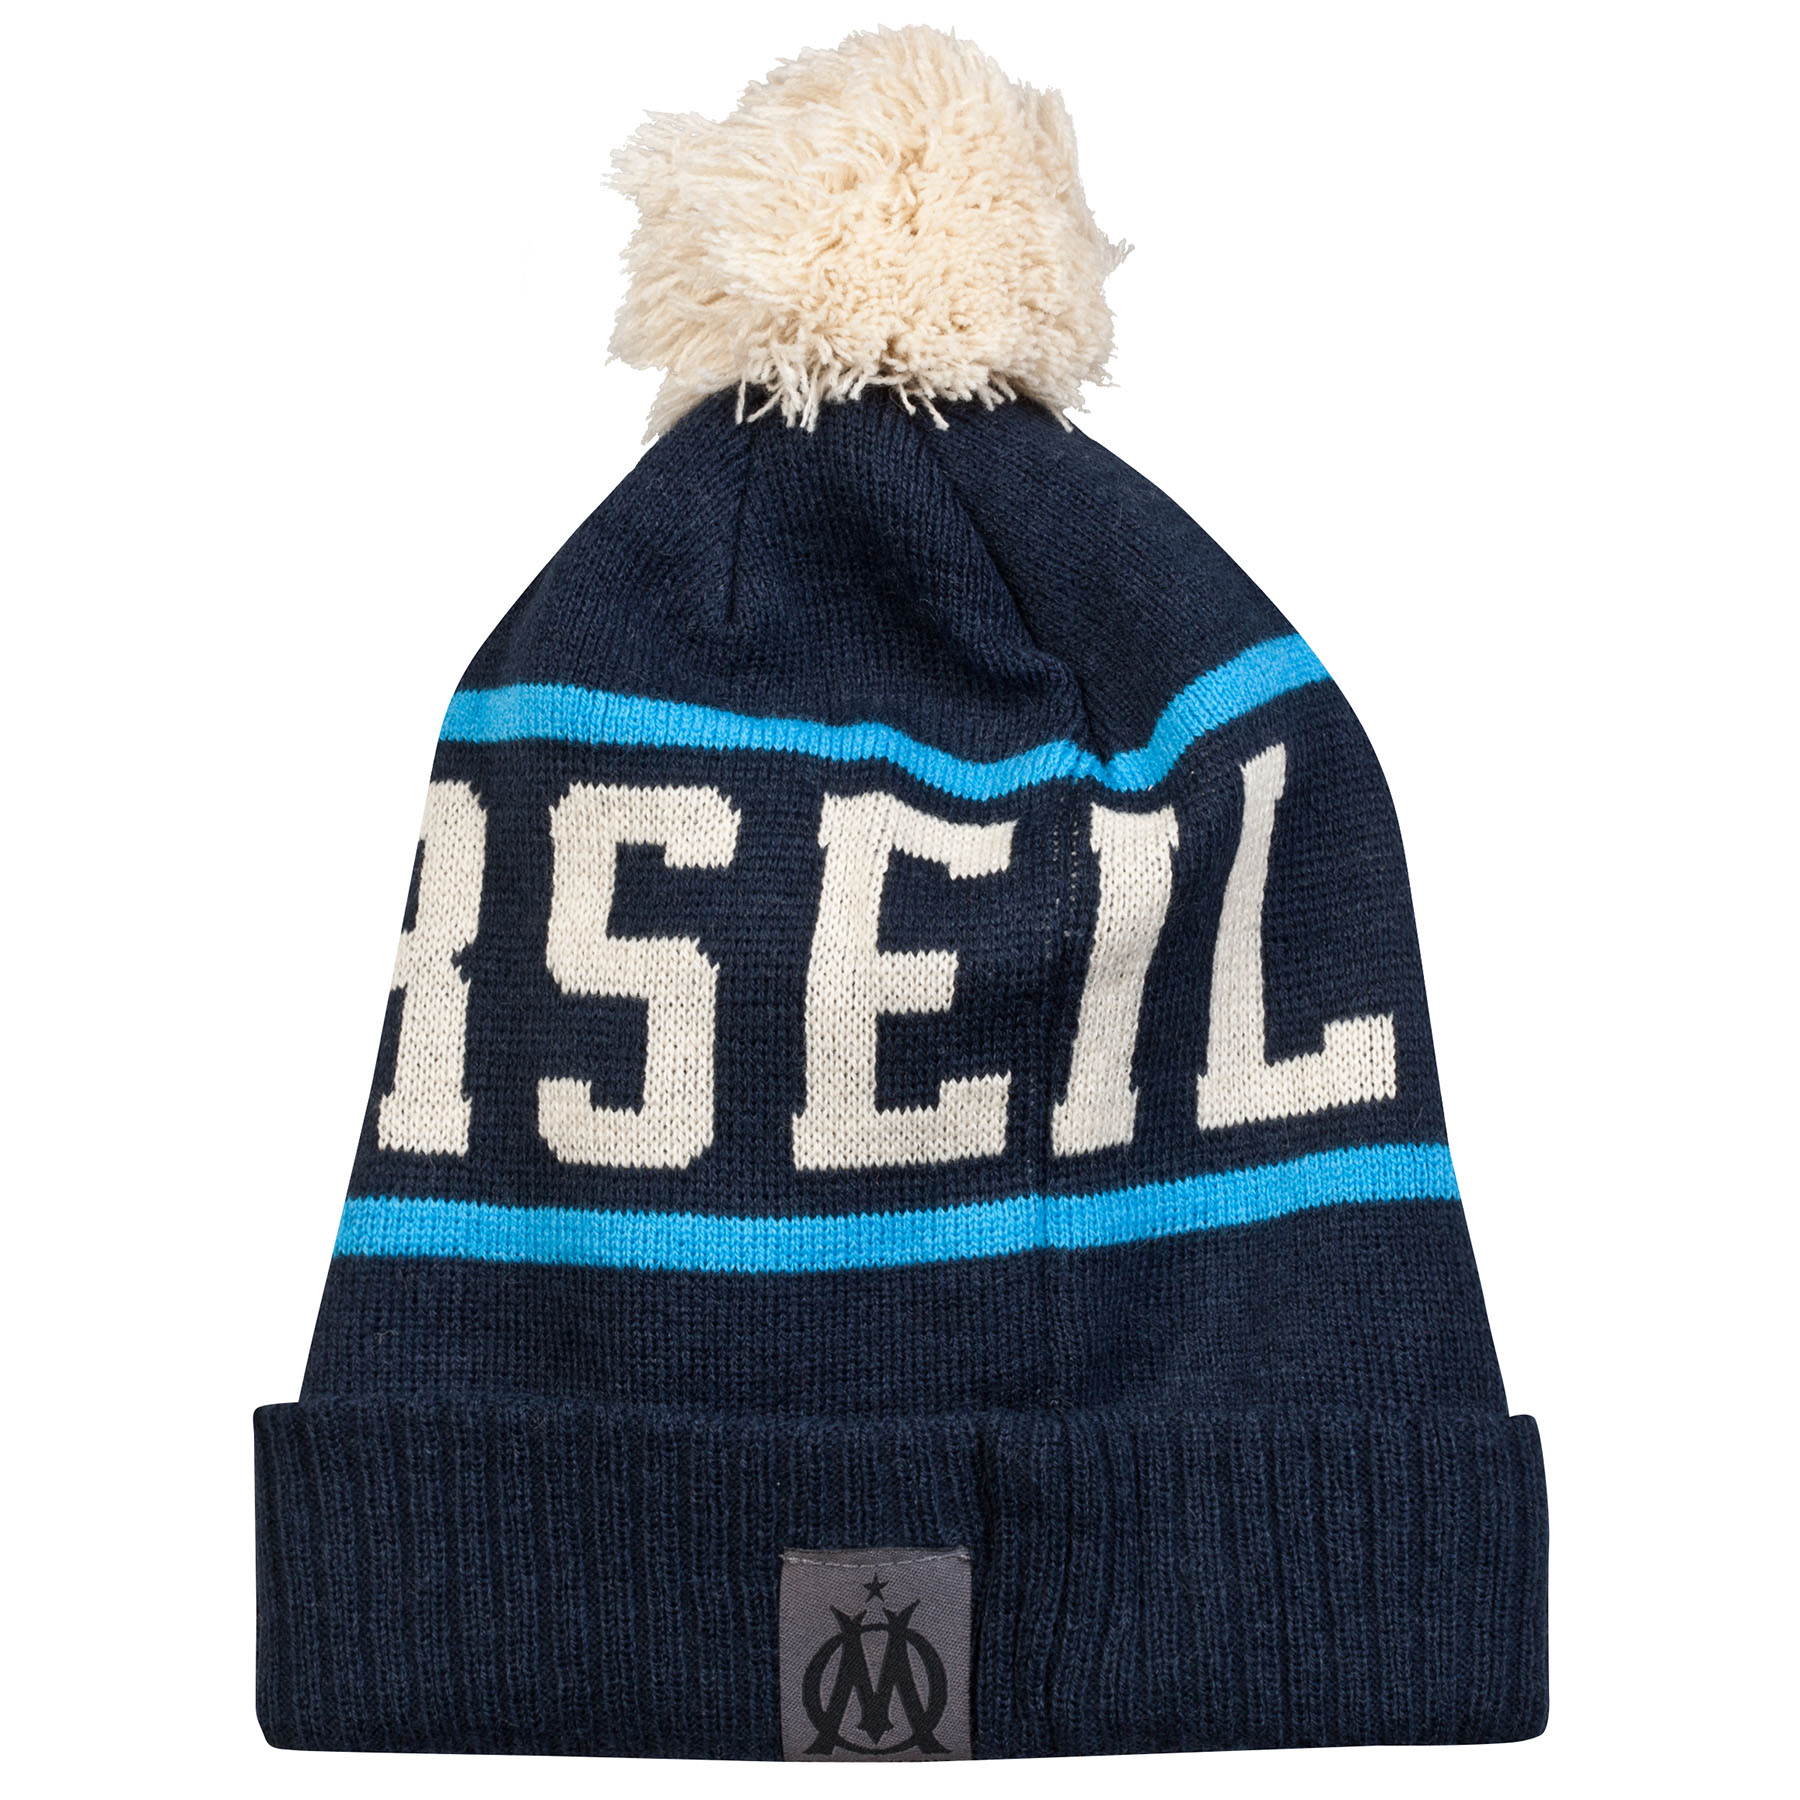 Olympique de Marseille Lifestyle Bobble Hat - Denim Blue - Adult